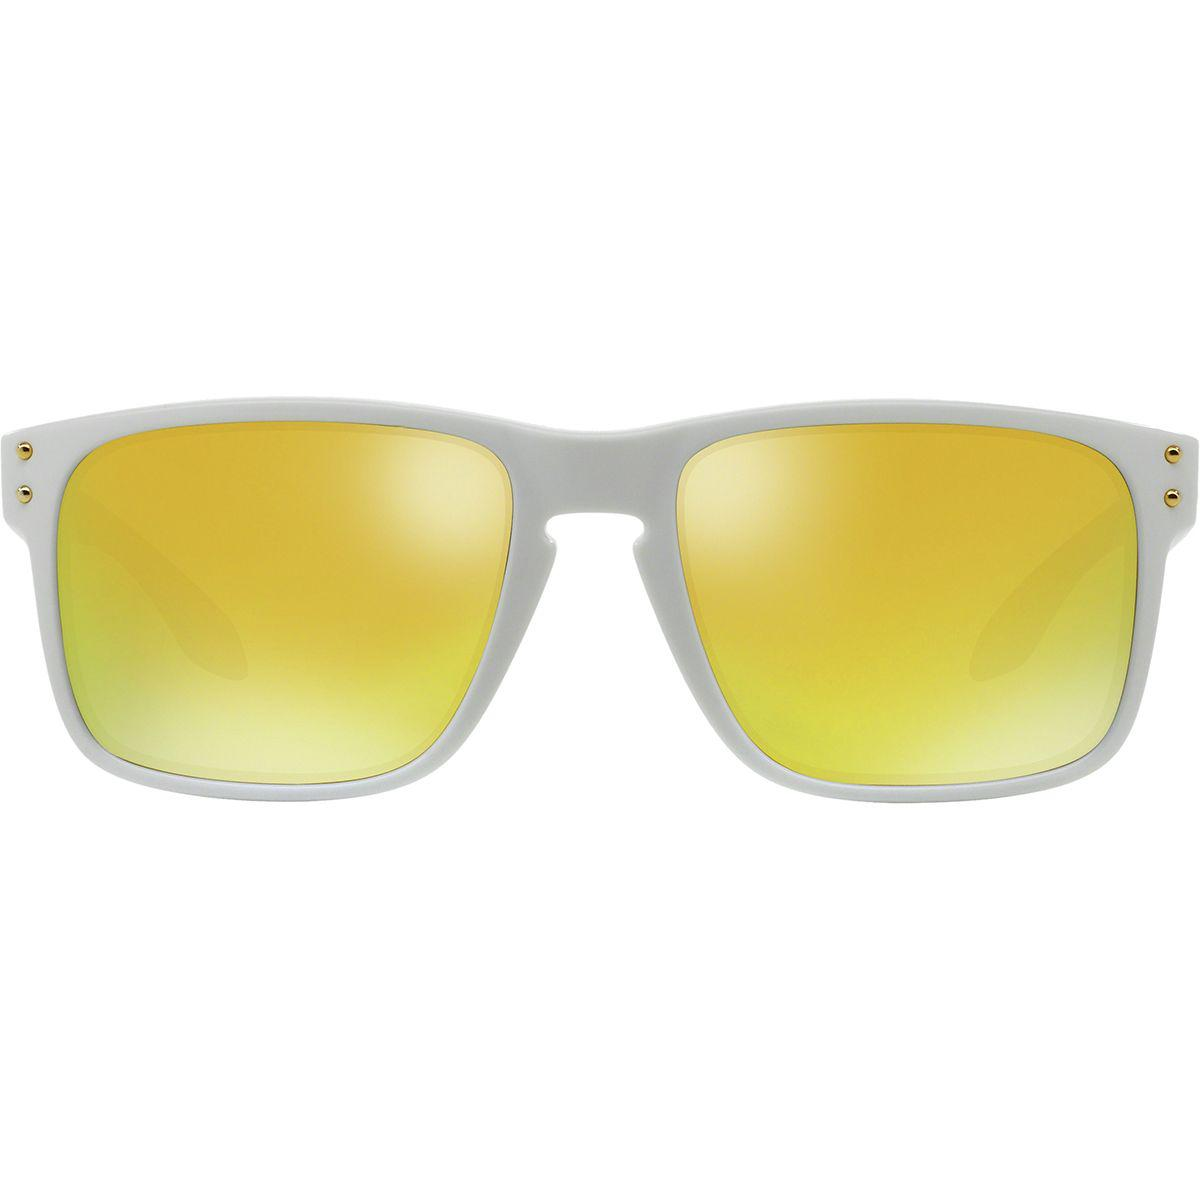 d6a04804b5 ... hot oakley multicolor holbrook asian fit sunglasses for men lyst. view  fullscreen 5ac2f 5546a